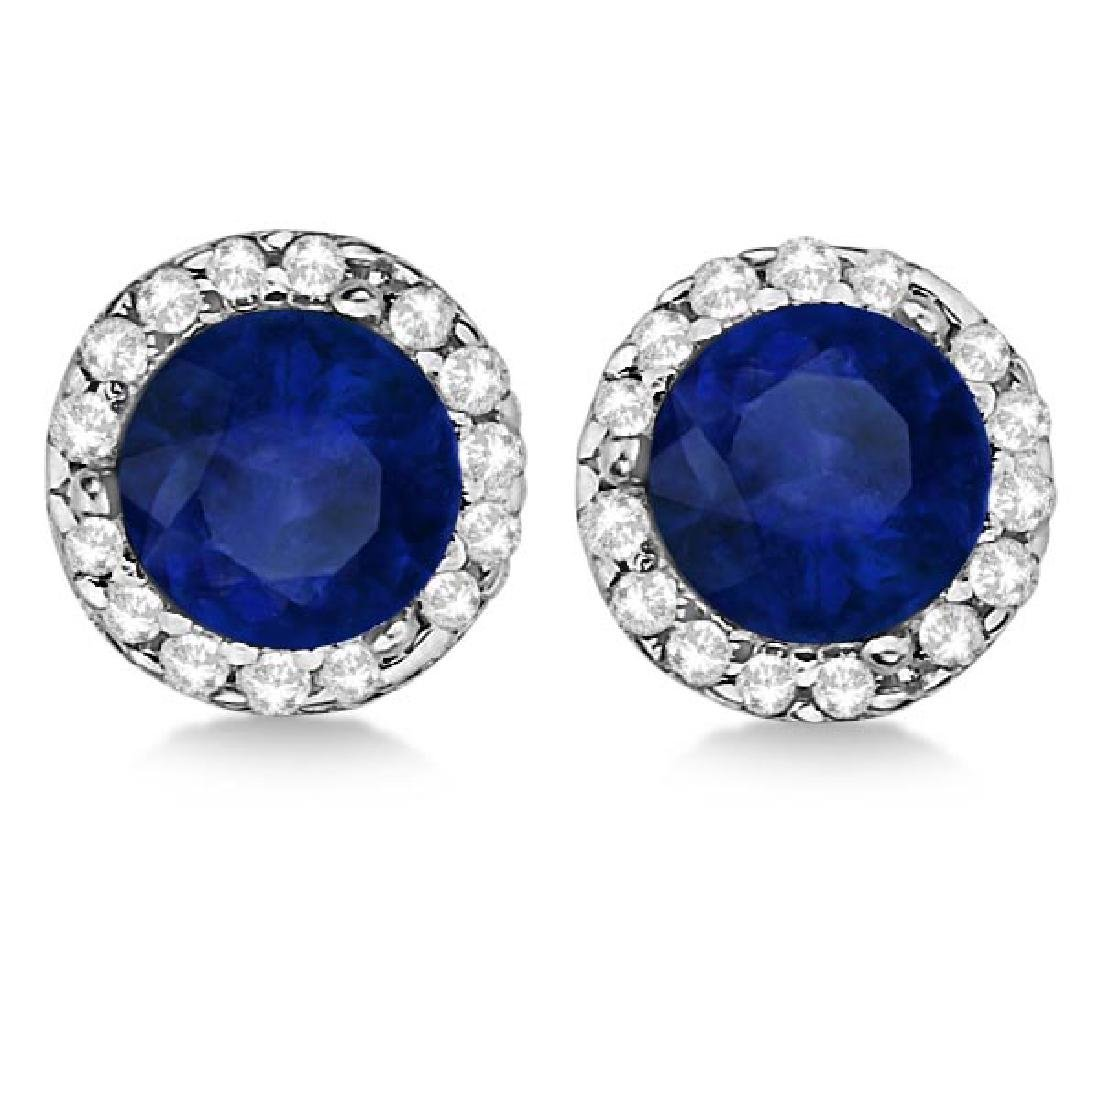 Diamond and Blue Sapphire Earrings Halo 14K White Gold